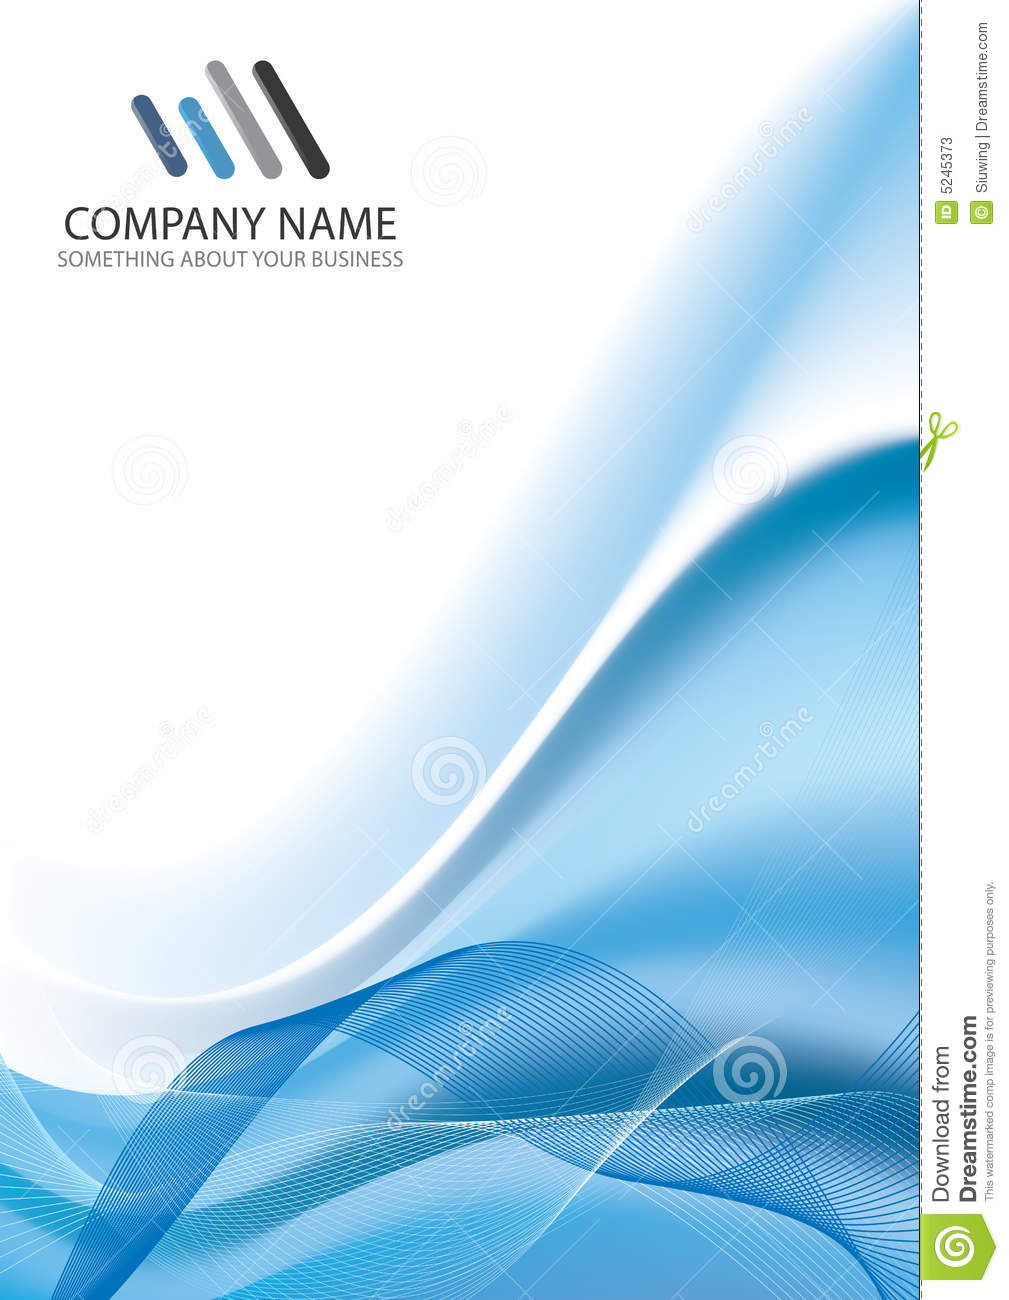 corporate business template background stock vector - illustration